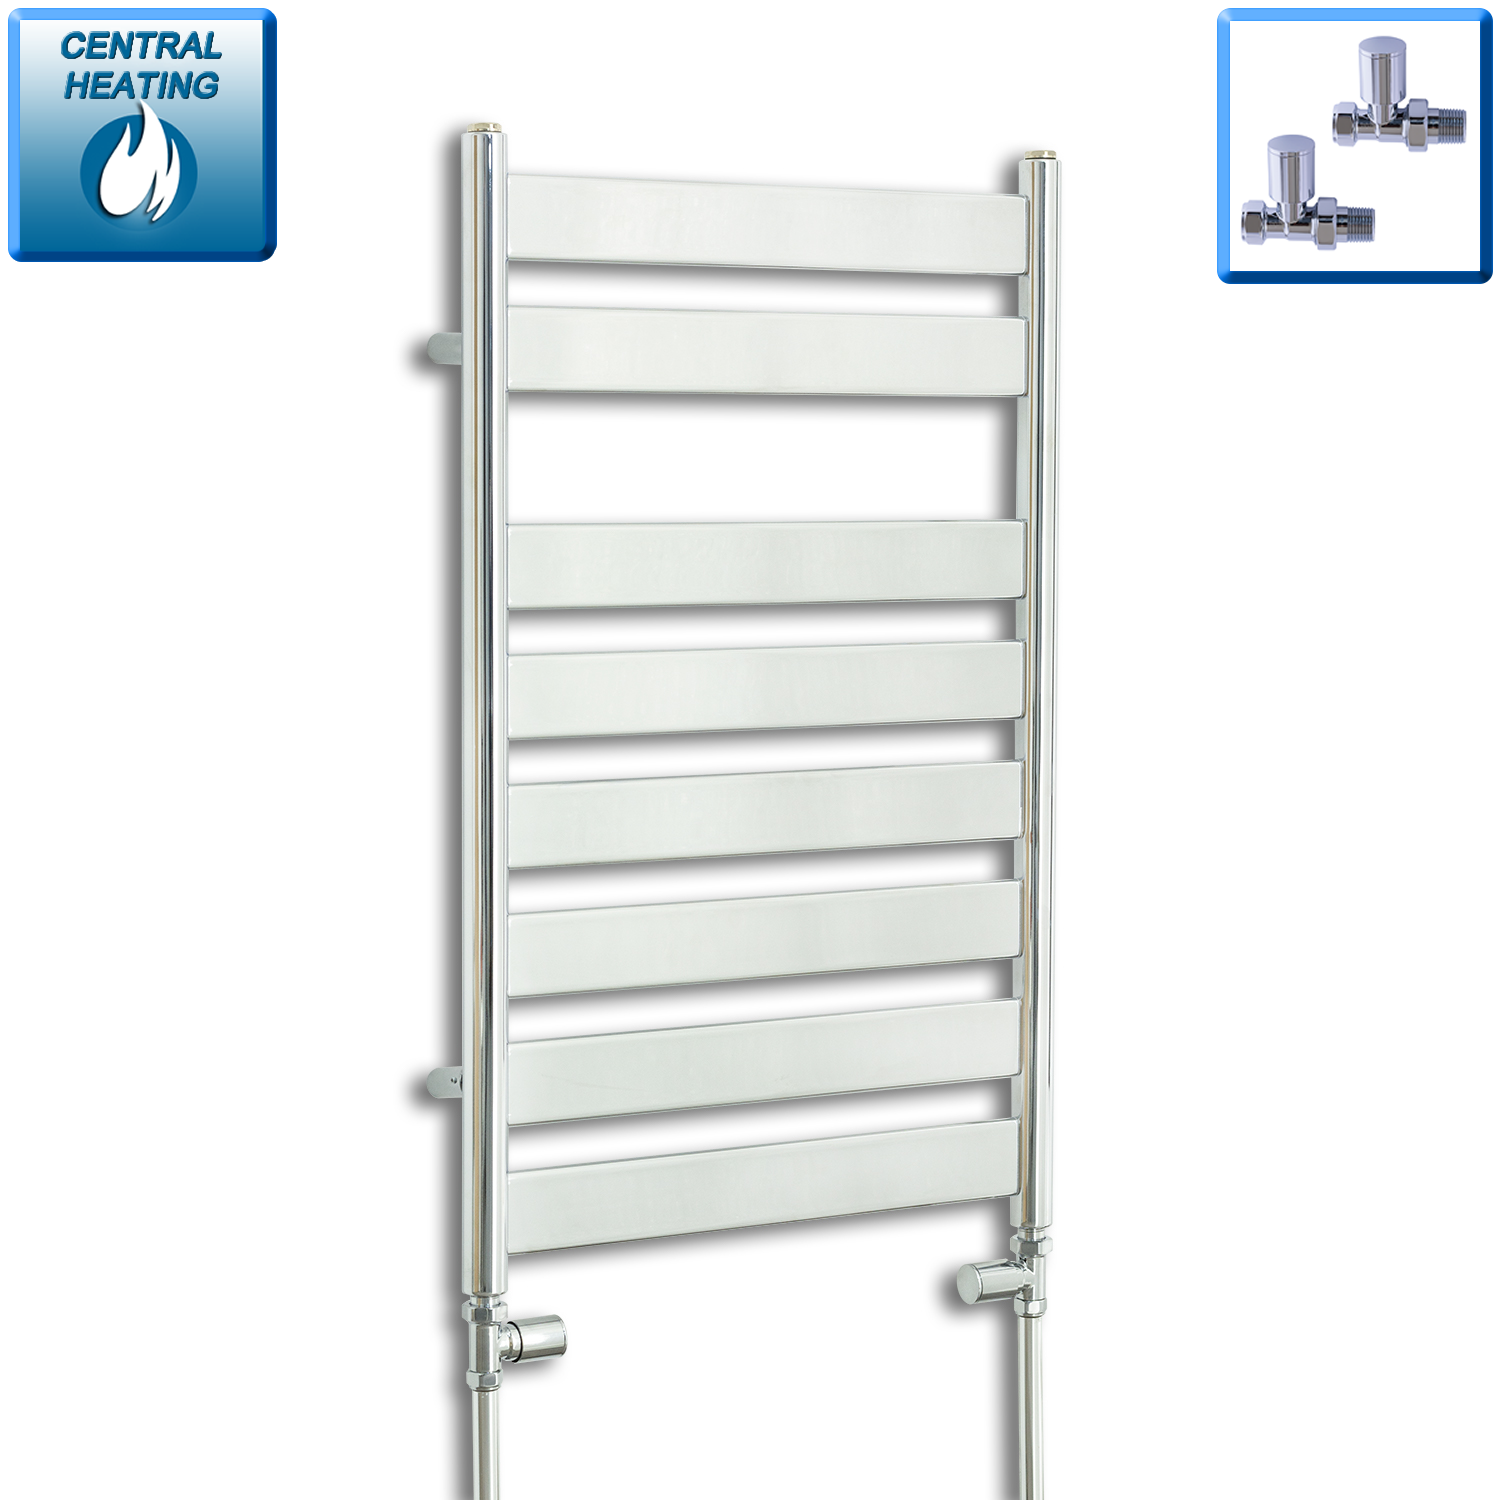 500mm Wide 800mm High Heated Flat Panel Design Towel Rail Radiator Chrome for Central Heating,With Straight Valve